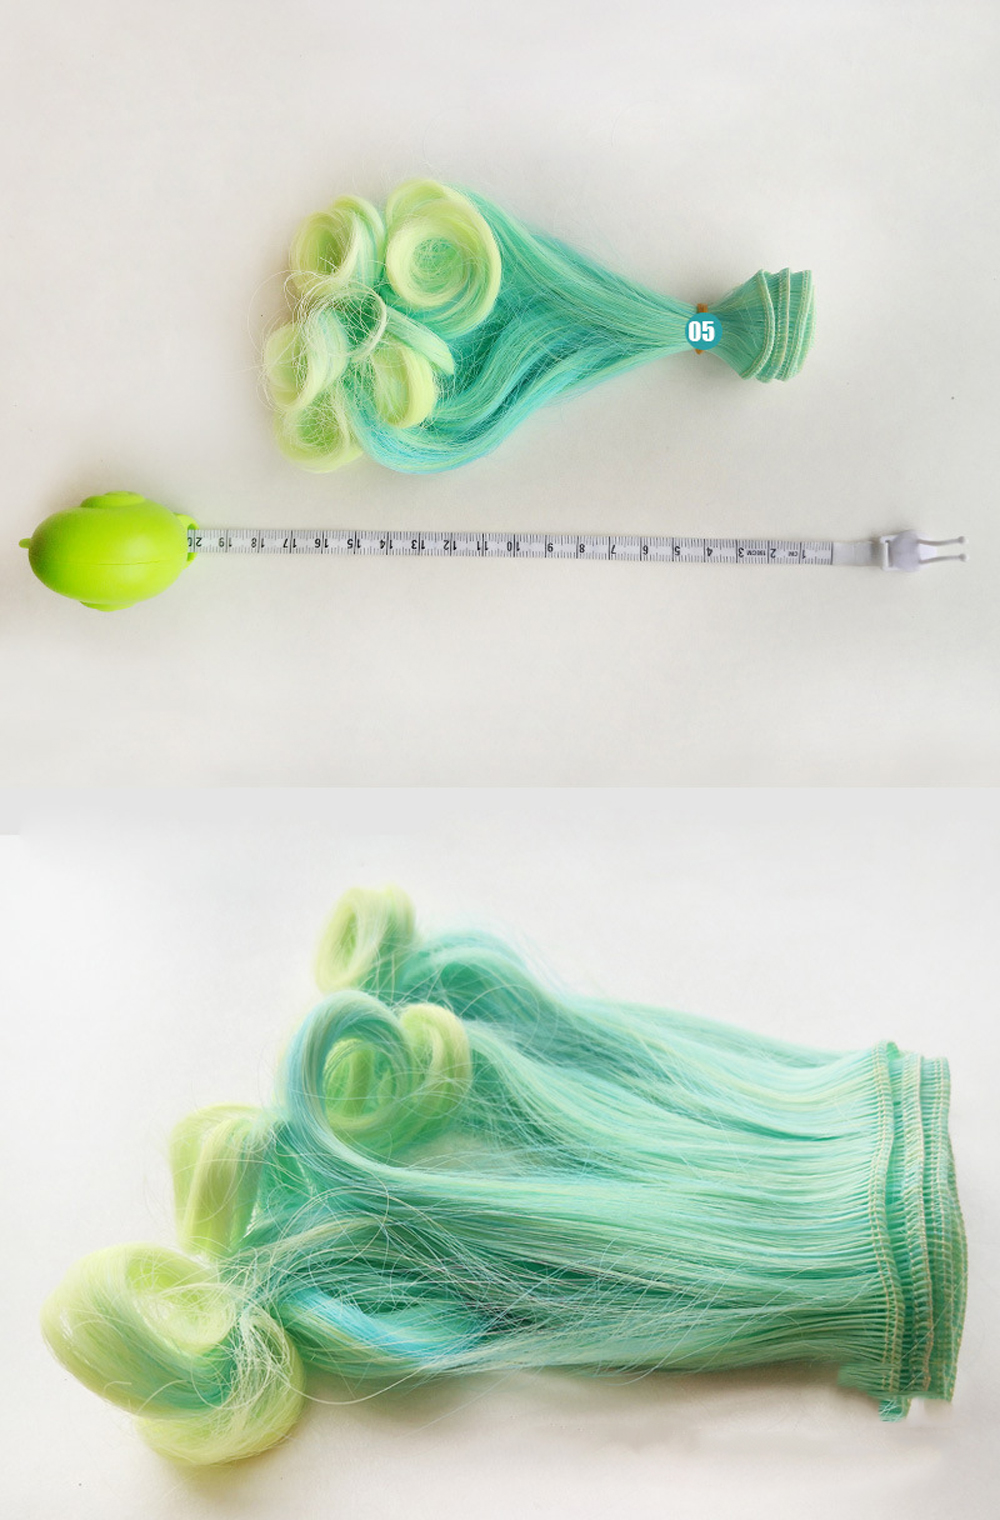 Fashion 20100cm DIY Curls Tresses Doll Wig High-Temperature Material Hair Wig For BJD And Handmade Toy Doll Accessories (4)